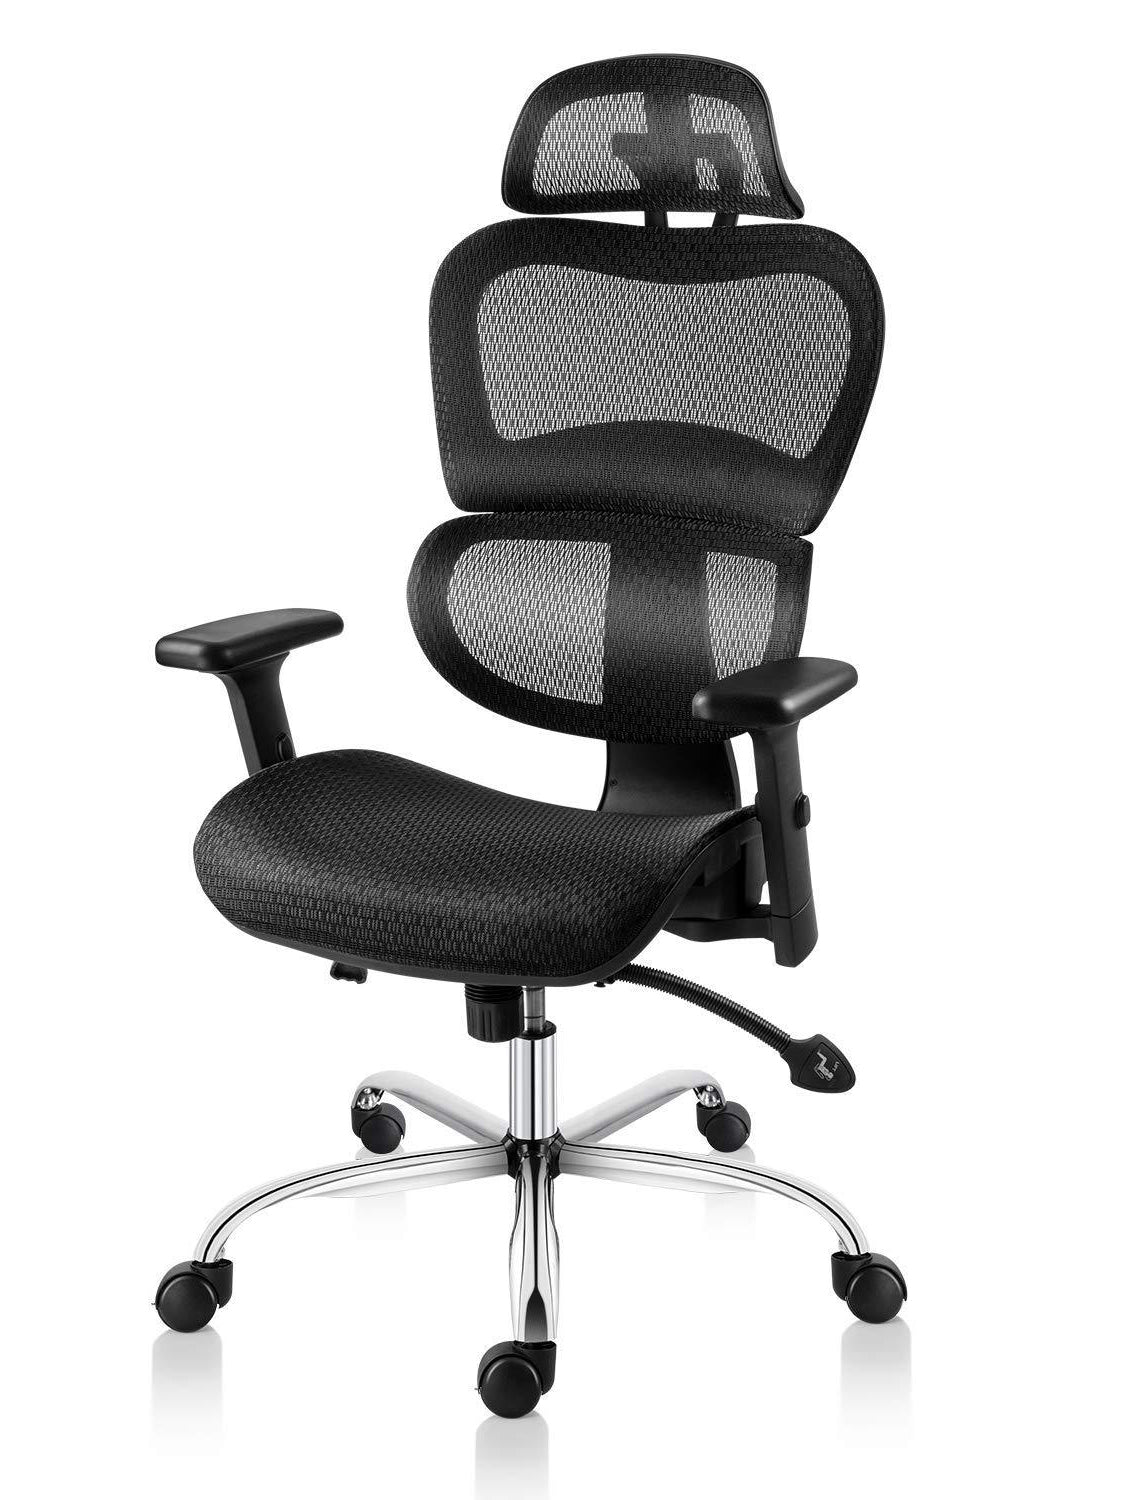 SmugChair Ergonomic High Back Adjustable Office Chair